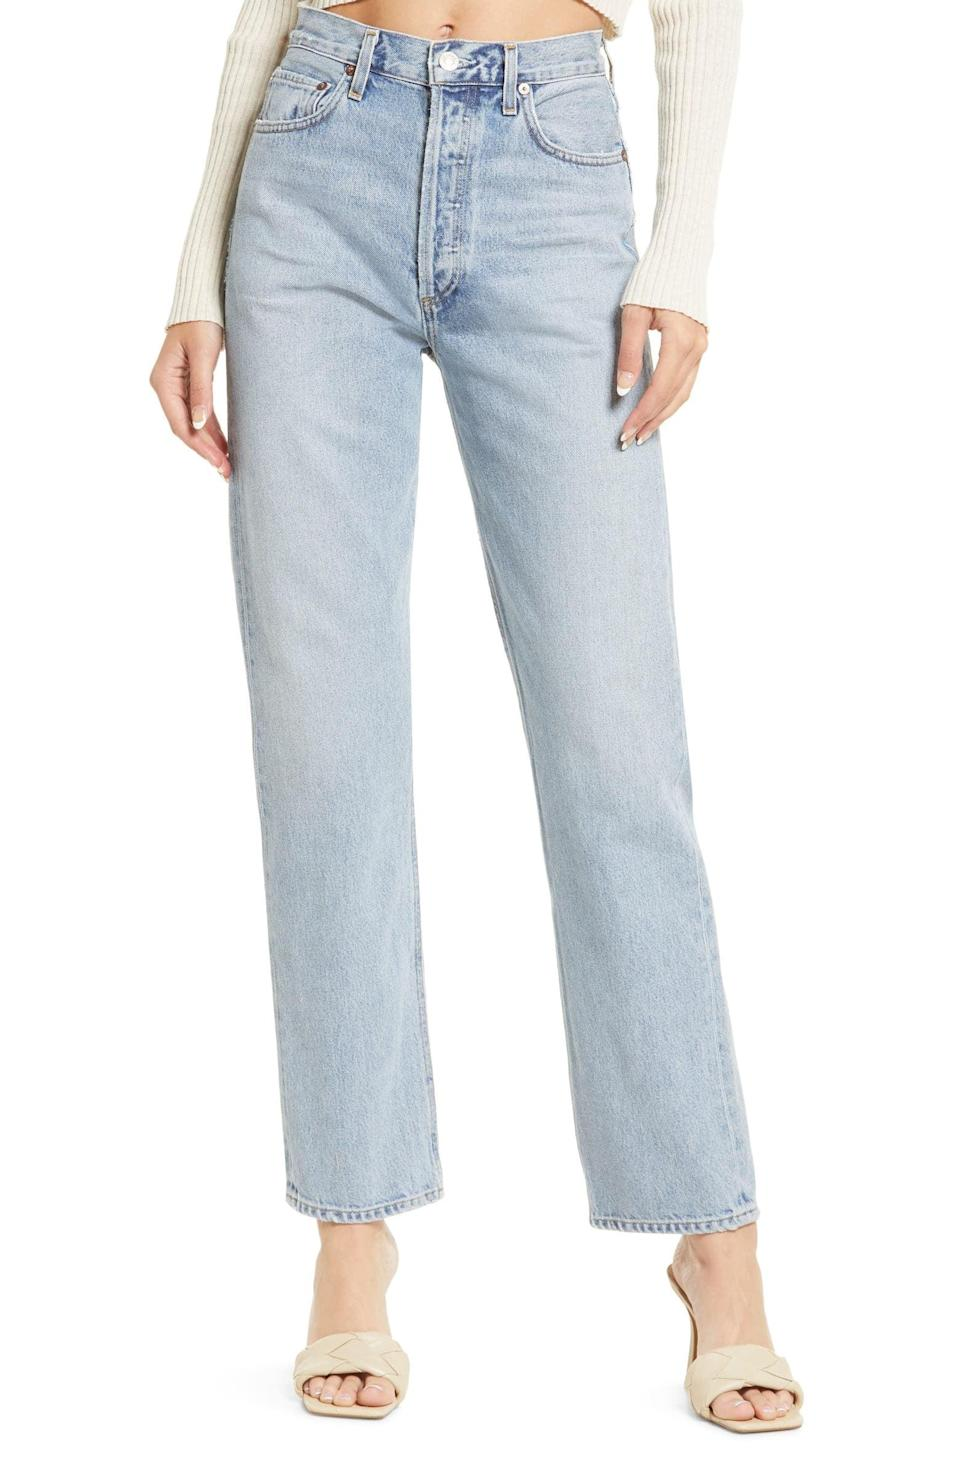 <p>This <span>Agolde '90s Pinch High Waist Straight Leg Organic Cotton Jeans</span> ($198) gives us all the vintage feels with the faded blue style. The fit is loose yet tailored, making it an effortlessly cool pick.</p>